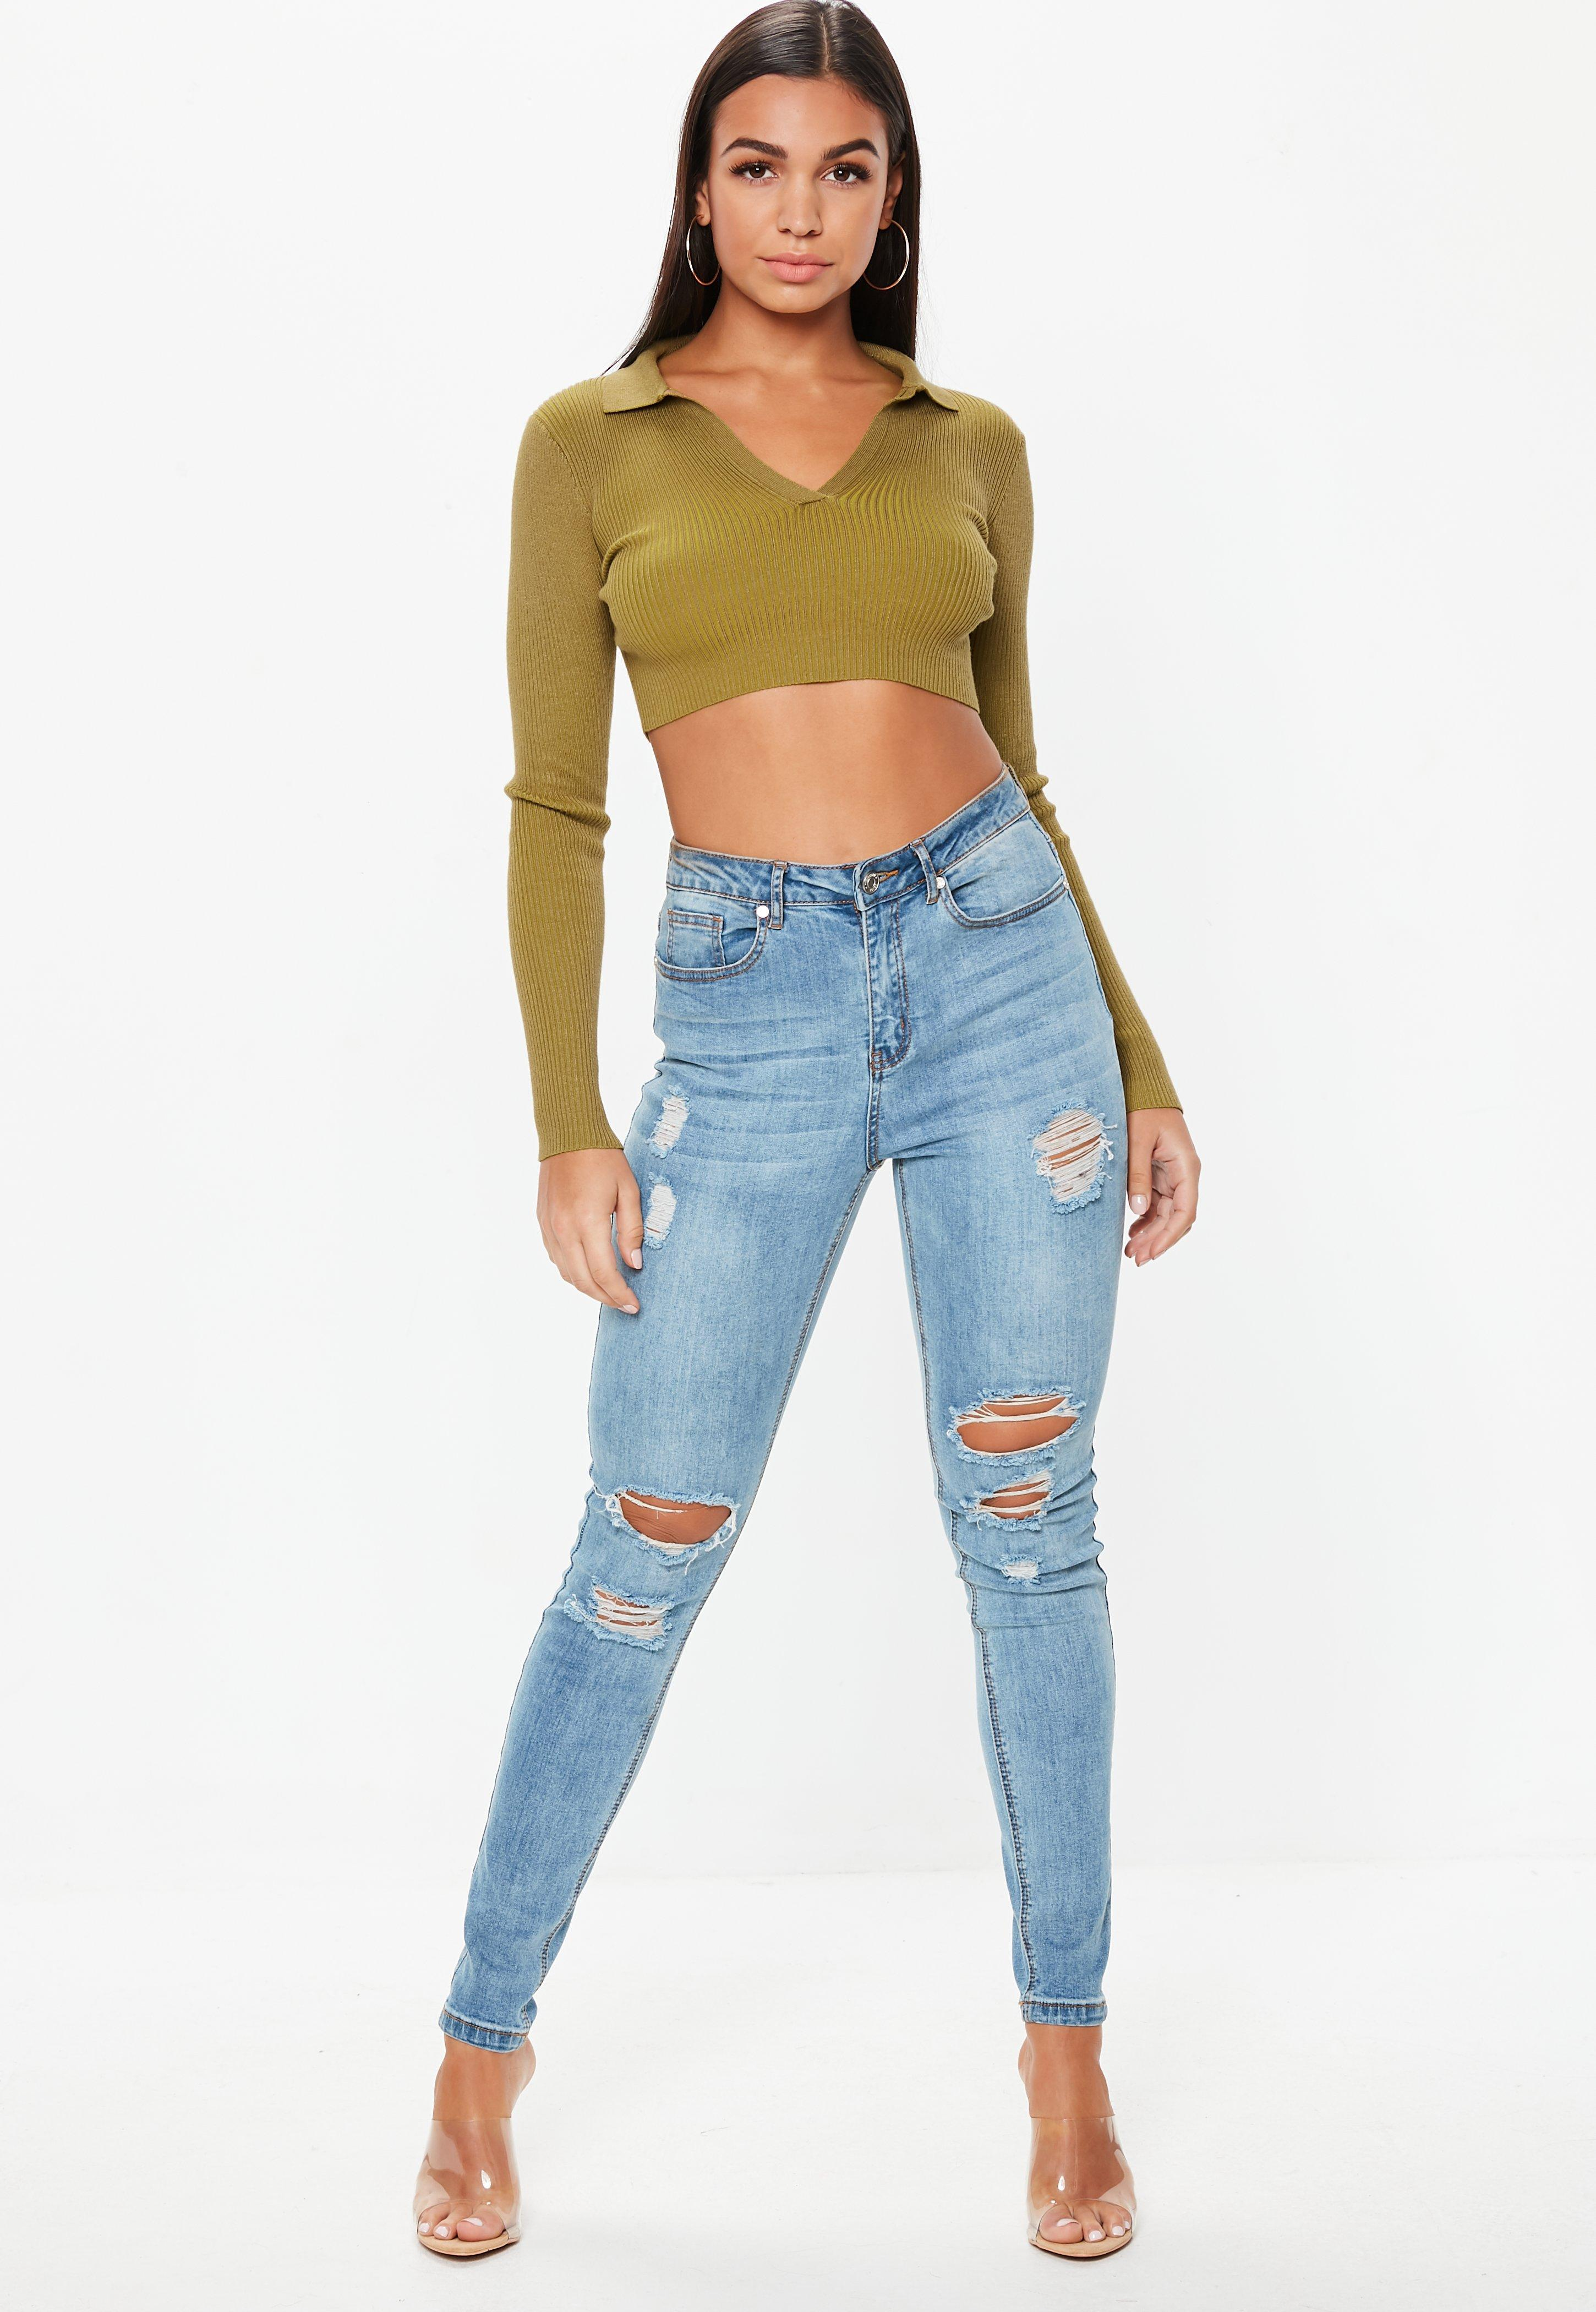 d63026177222e Missguided - Multicolor Khaki Collar Plunge Knitted Crop Top - Lyst. View  fullscreen